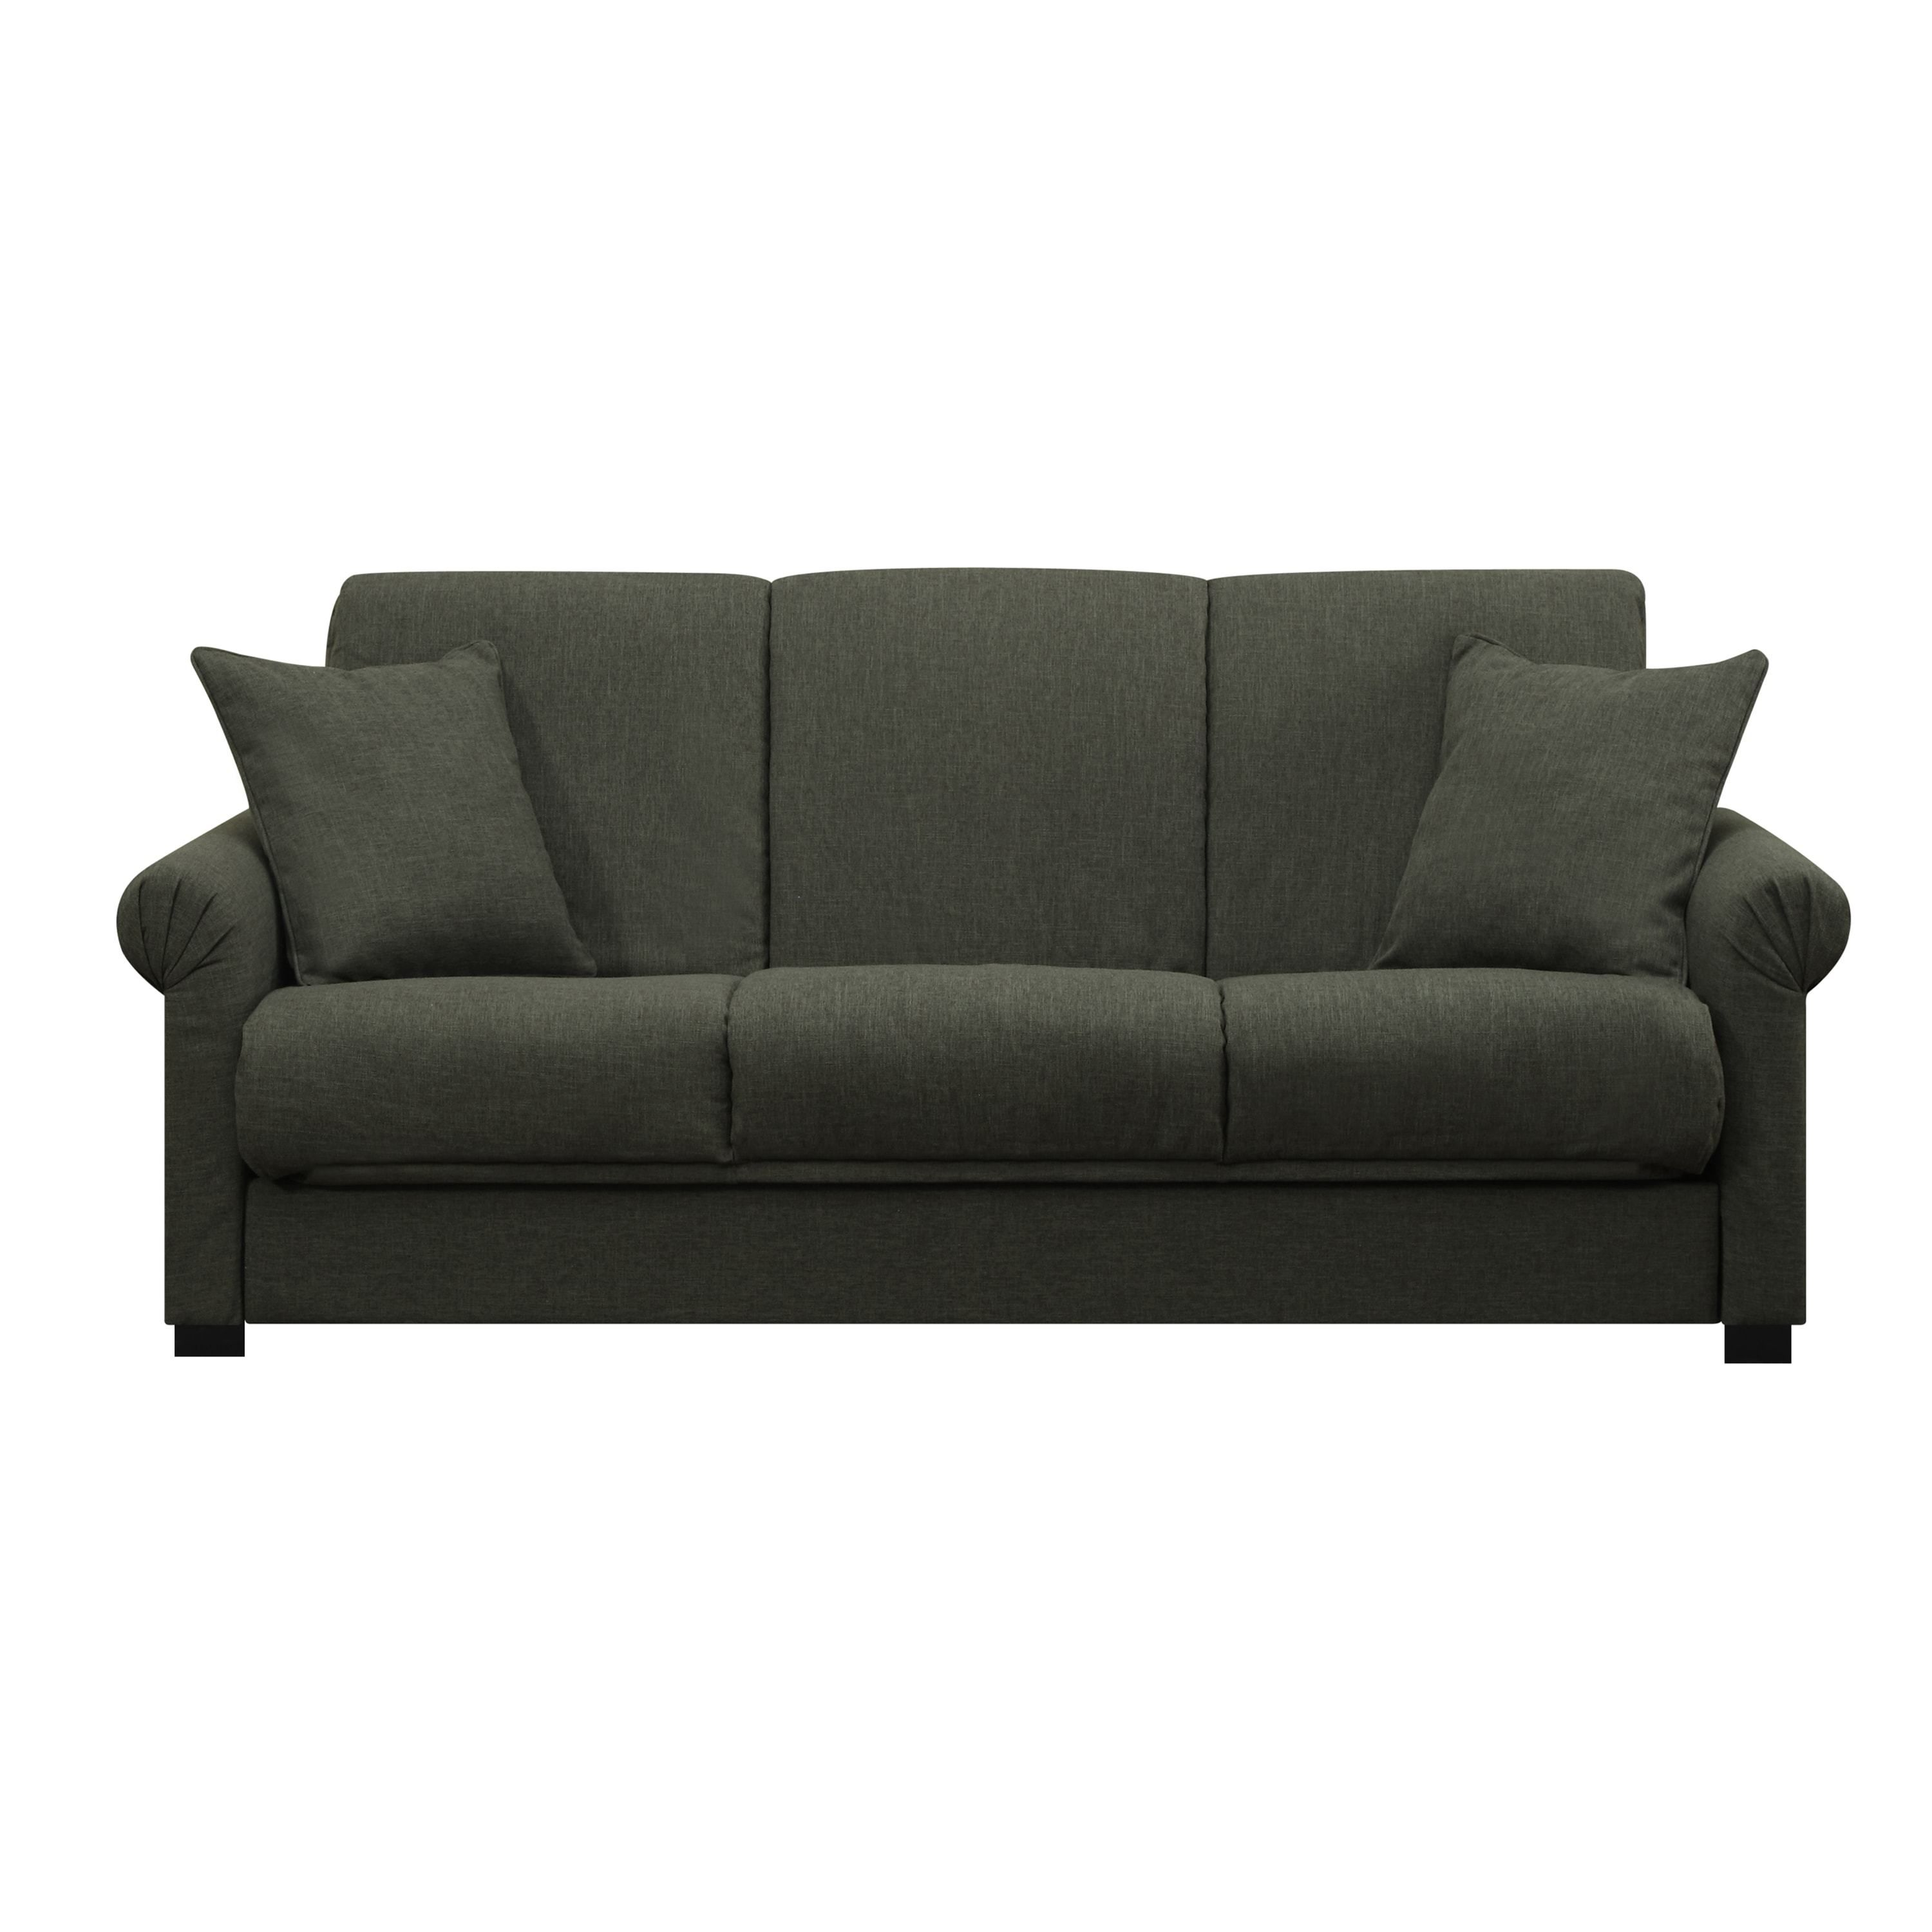 Handy Living Rio Convert A Couch Basil Green Linen Futon Sofa  ~ Convert A Couch And Sofa Bed